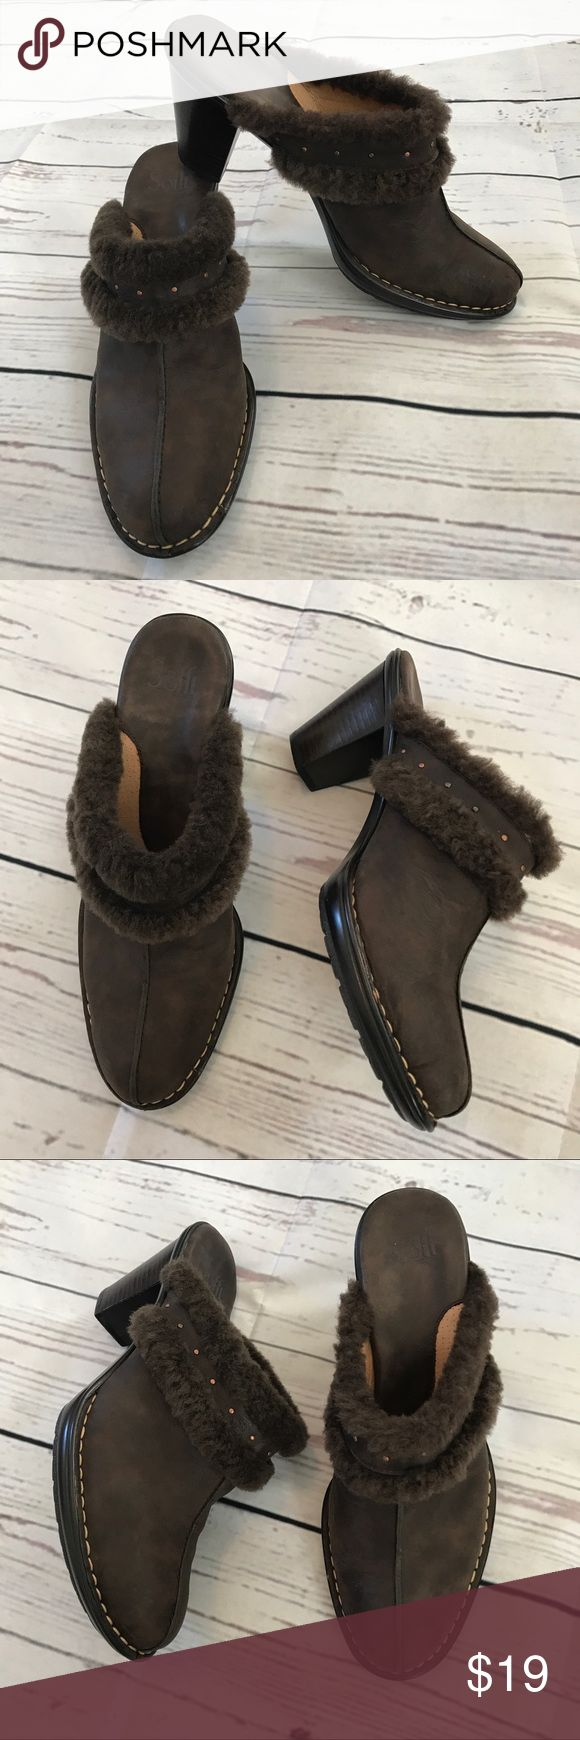 Sofft Heeled Mules Clogs Slip On Shoes Boot slip on style. Very comfortable. Great to wear with skirts, dresses or pants. Nice suede look. Sofft Shoes Mules & Clogs